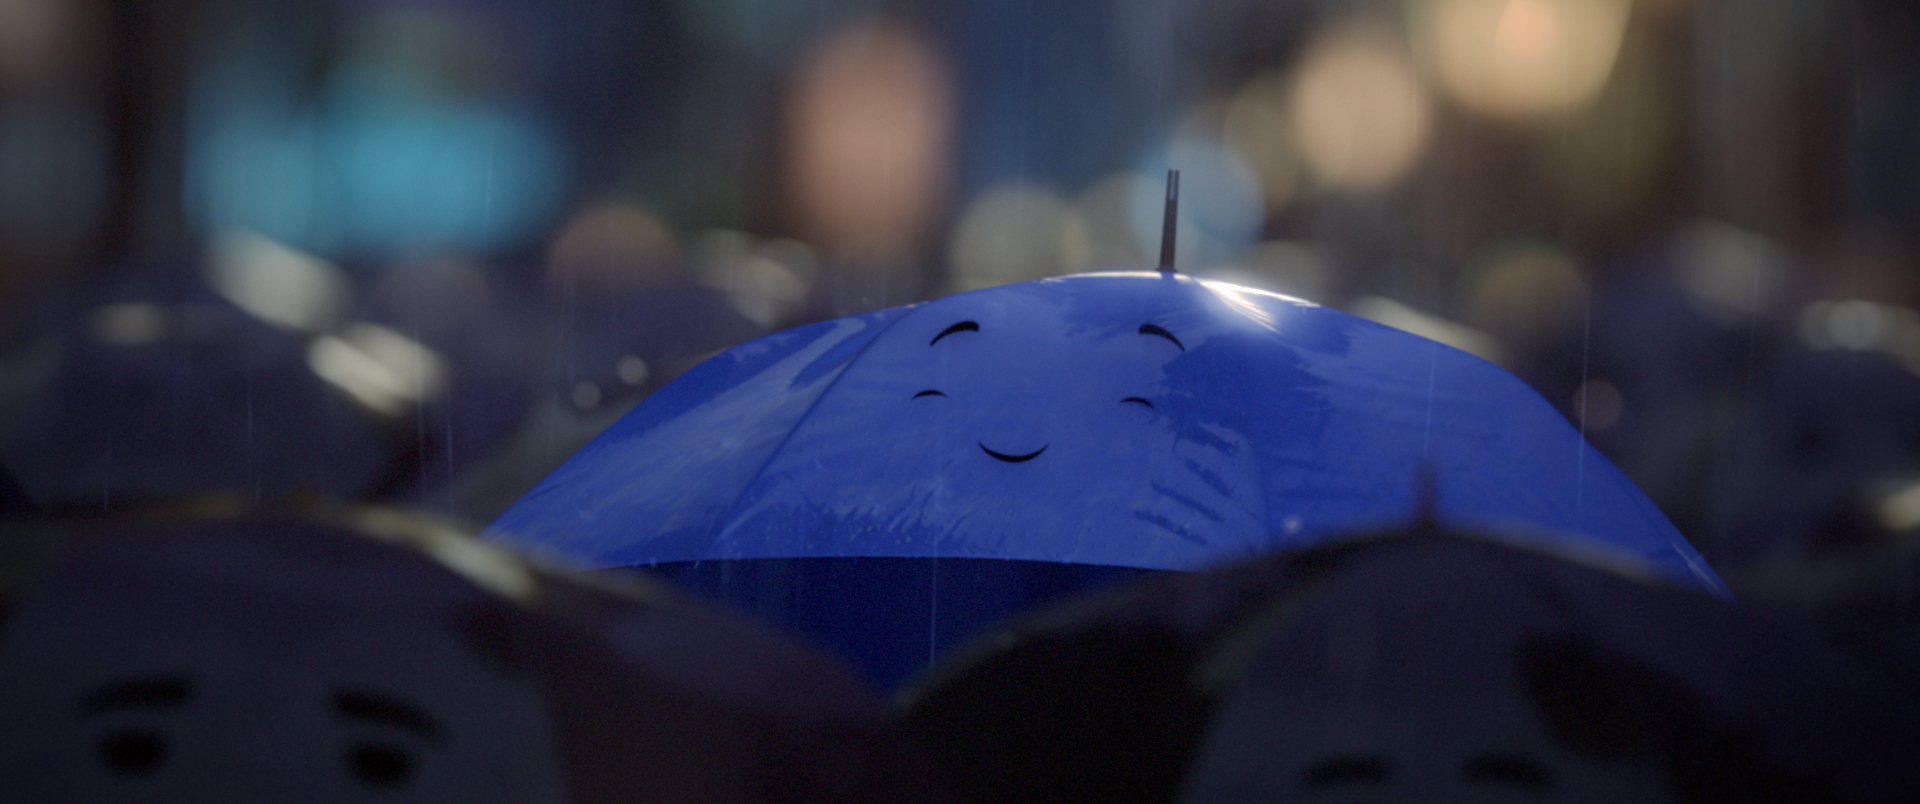 A still from 'The Blue Umbrella'